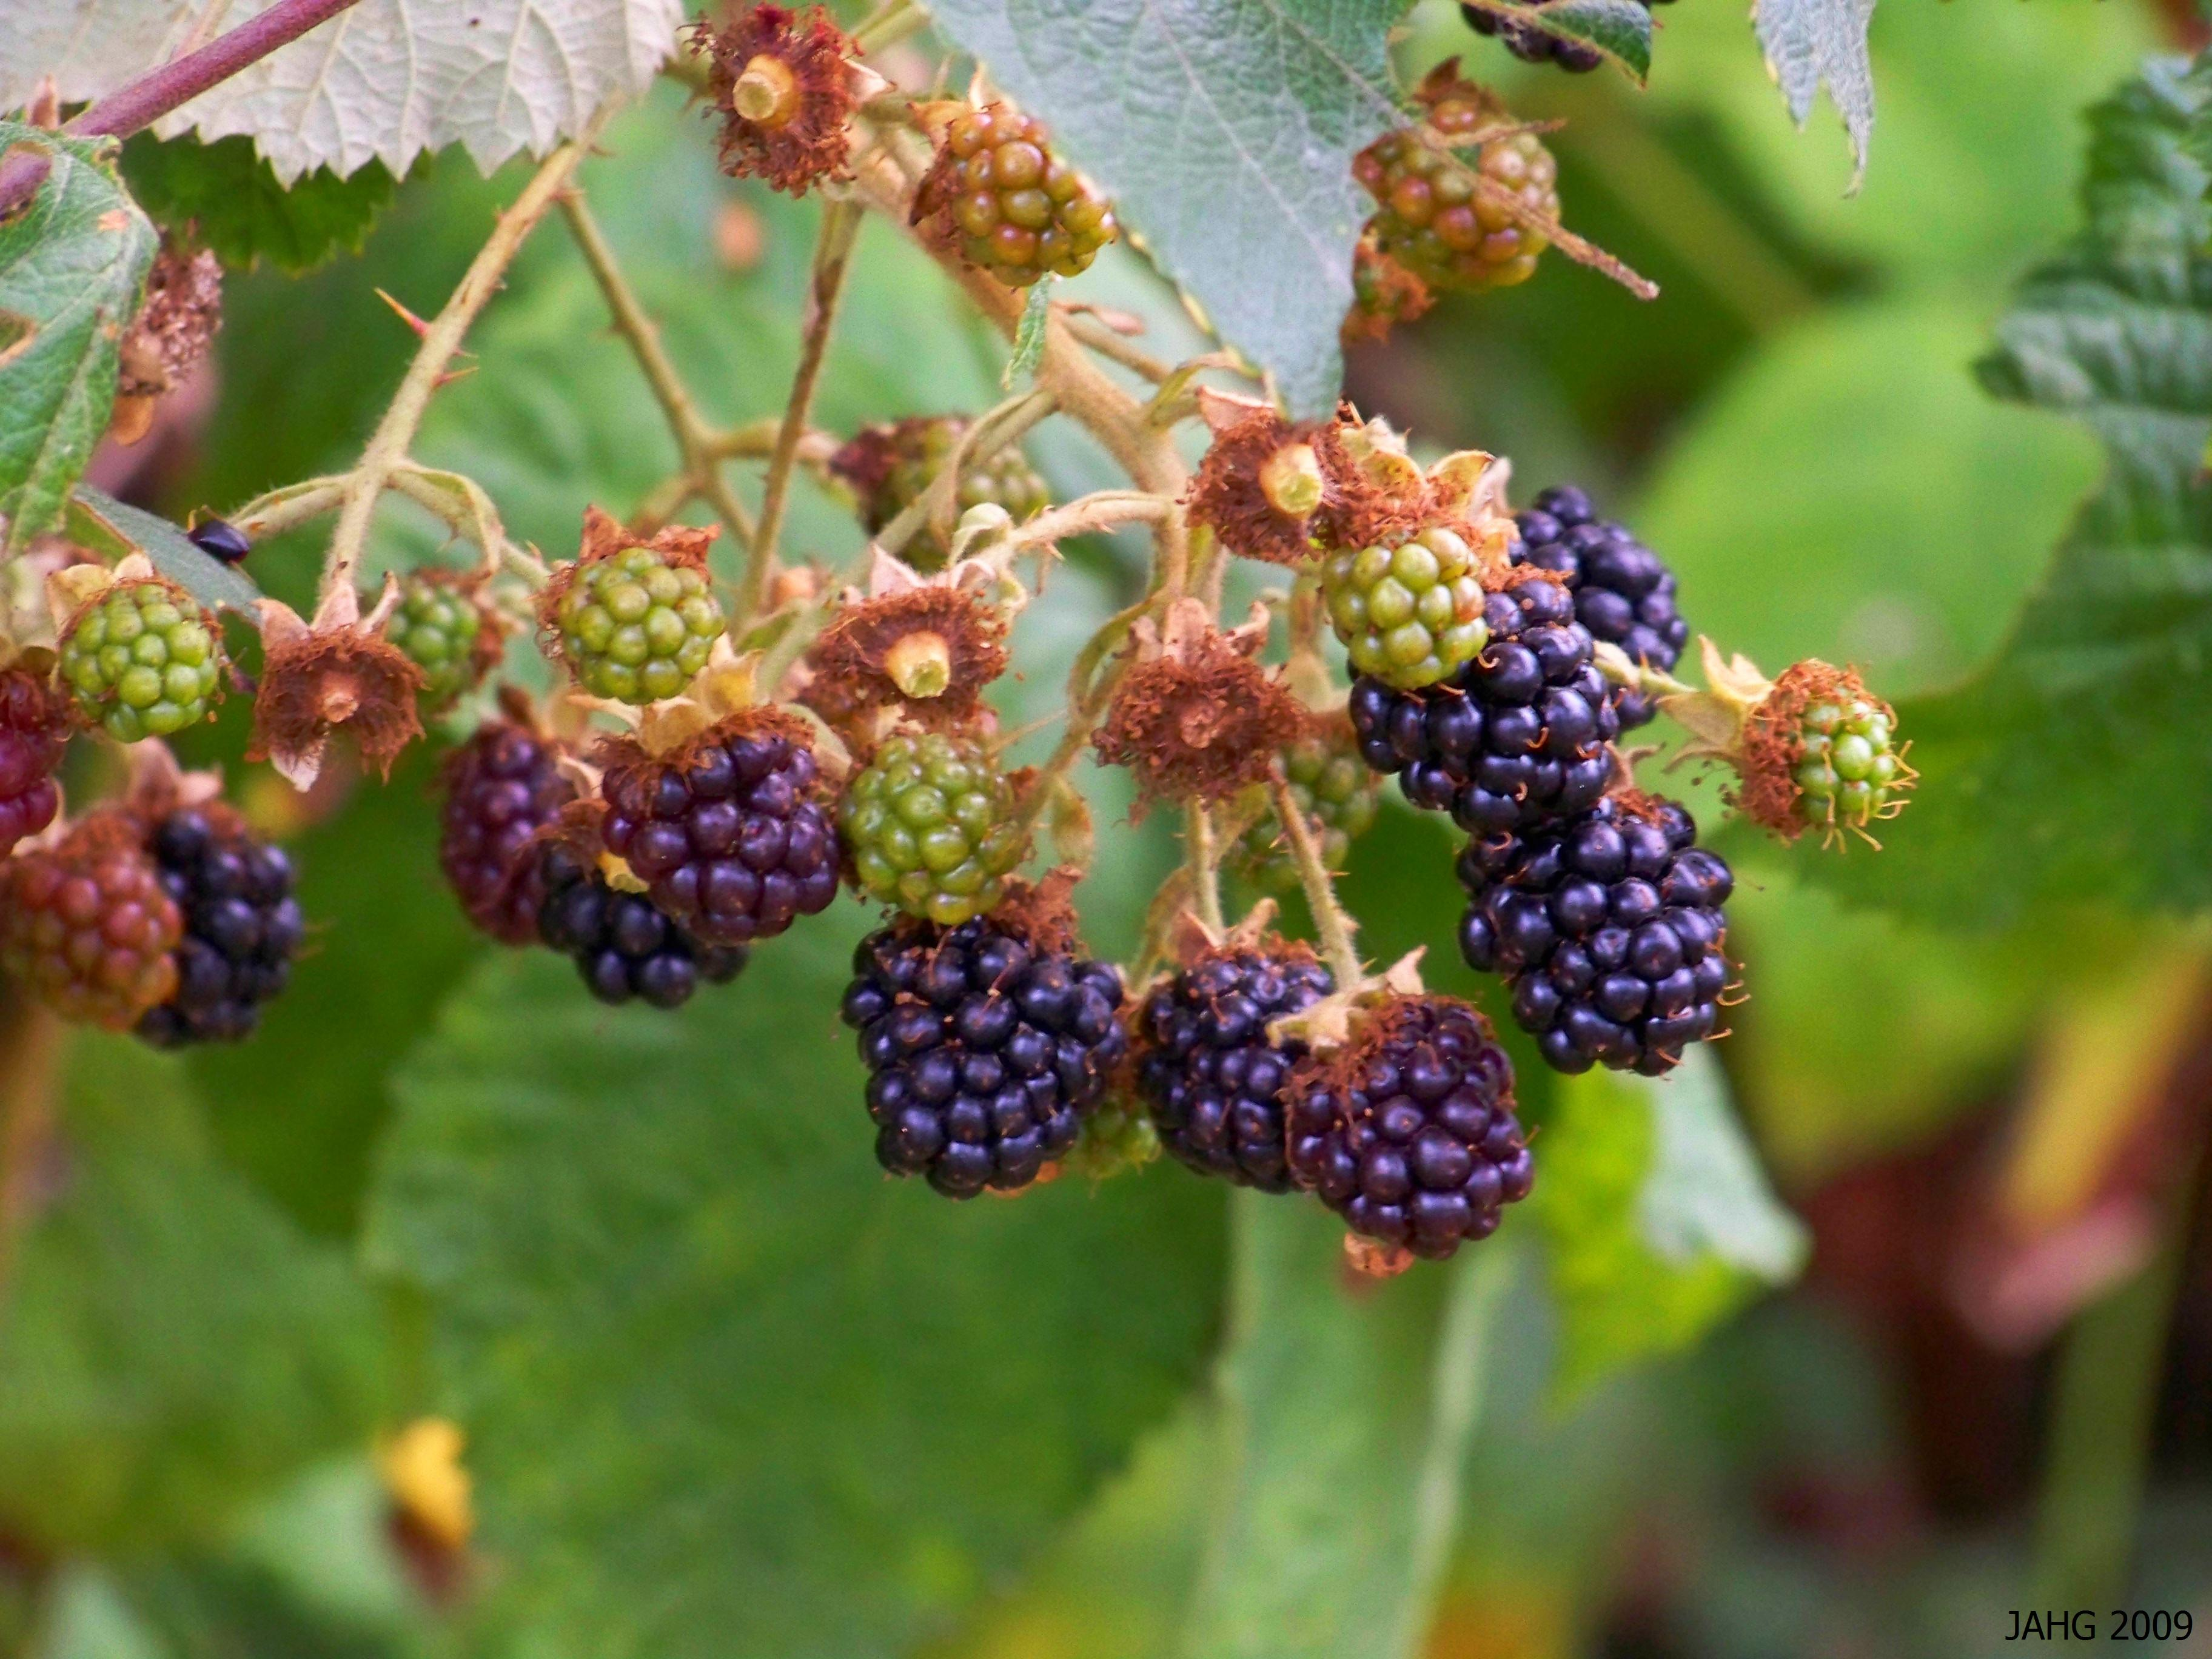 The Armenian Blackberry (Rubus armeniacus) produces bountiful crops year after year.